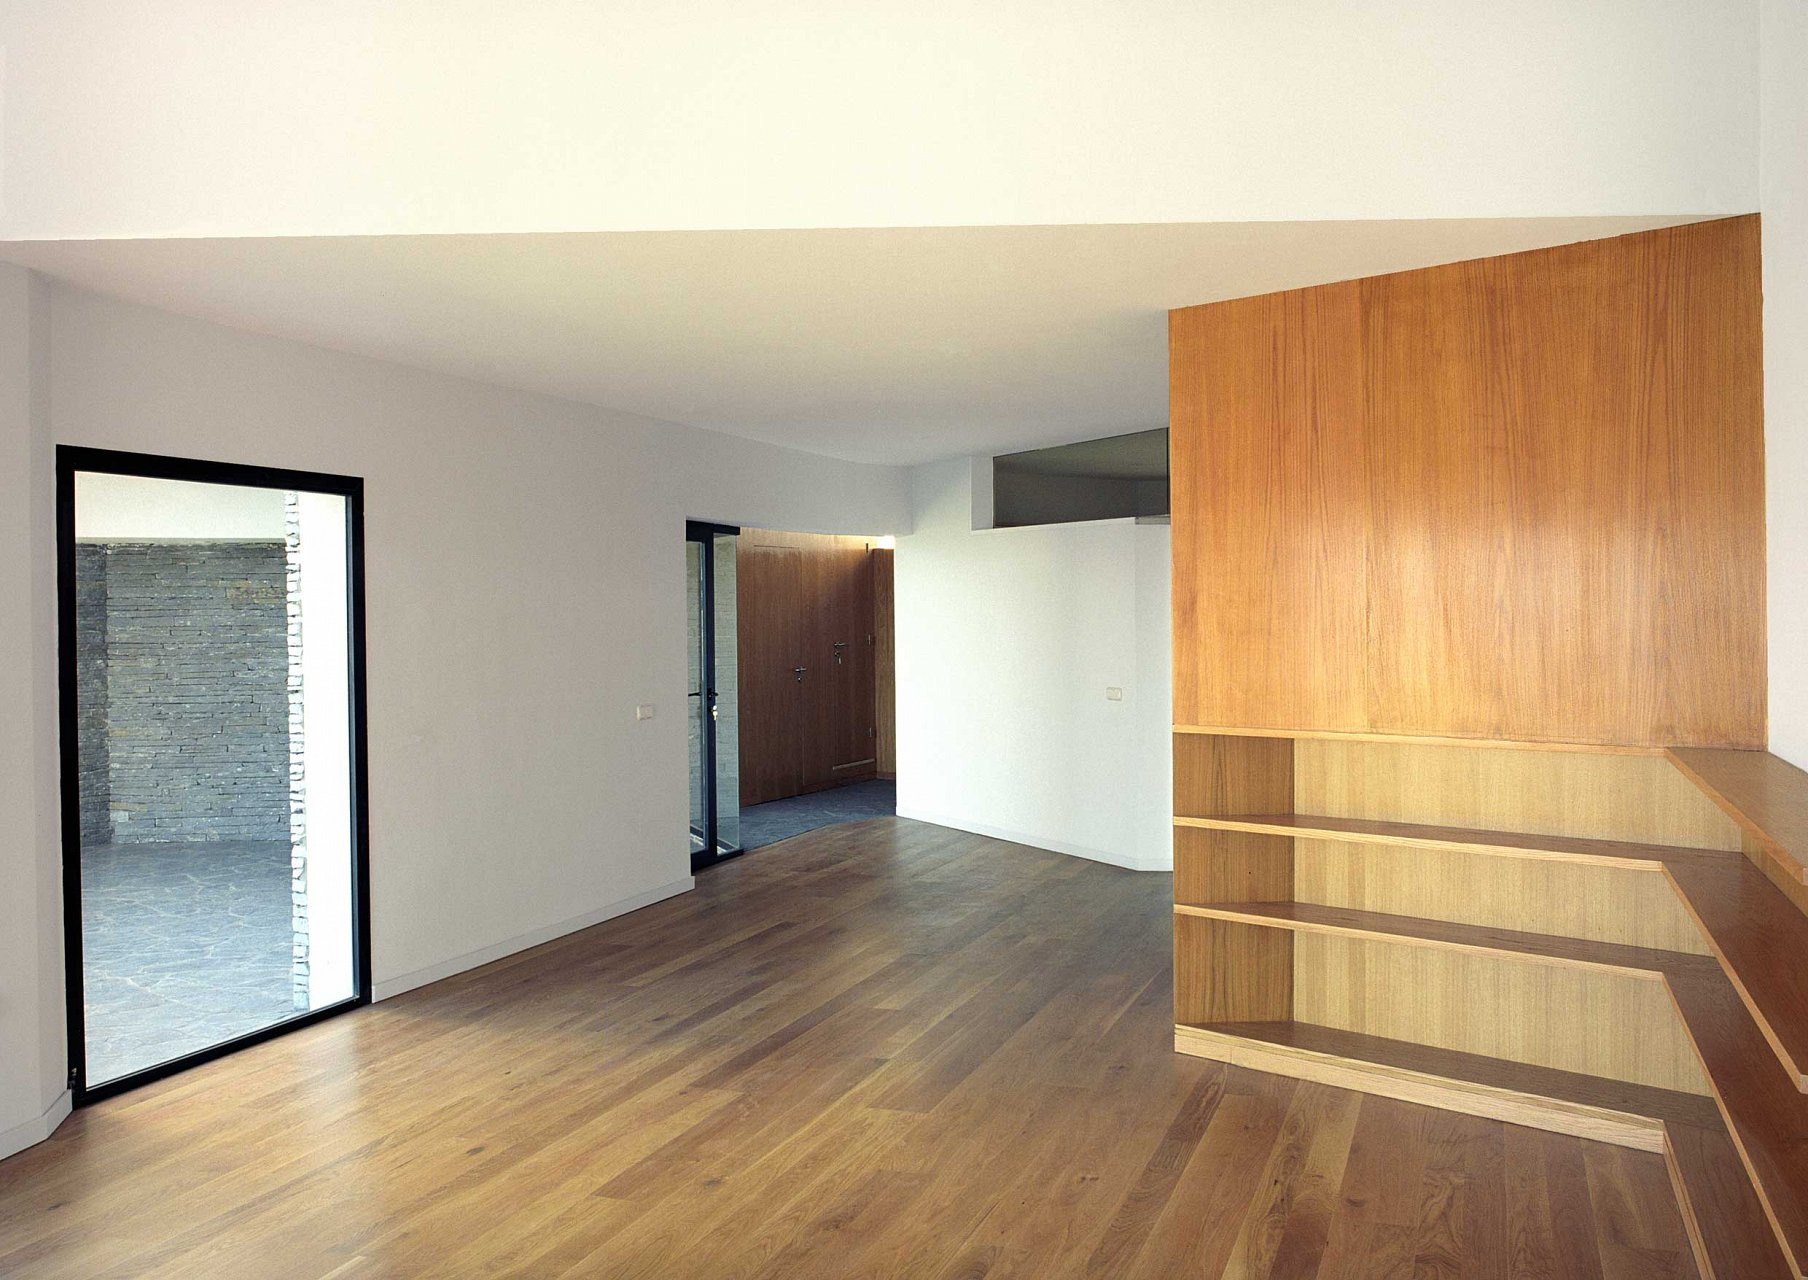 Studio-House in Acorán Santa Cruz de Tenerife